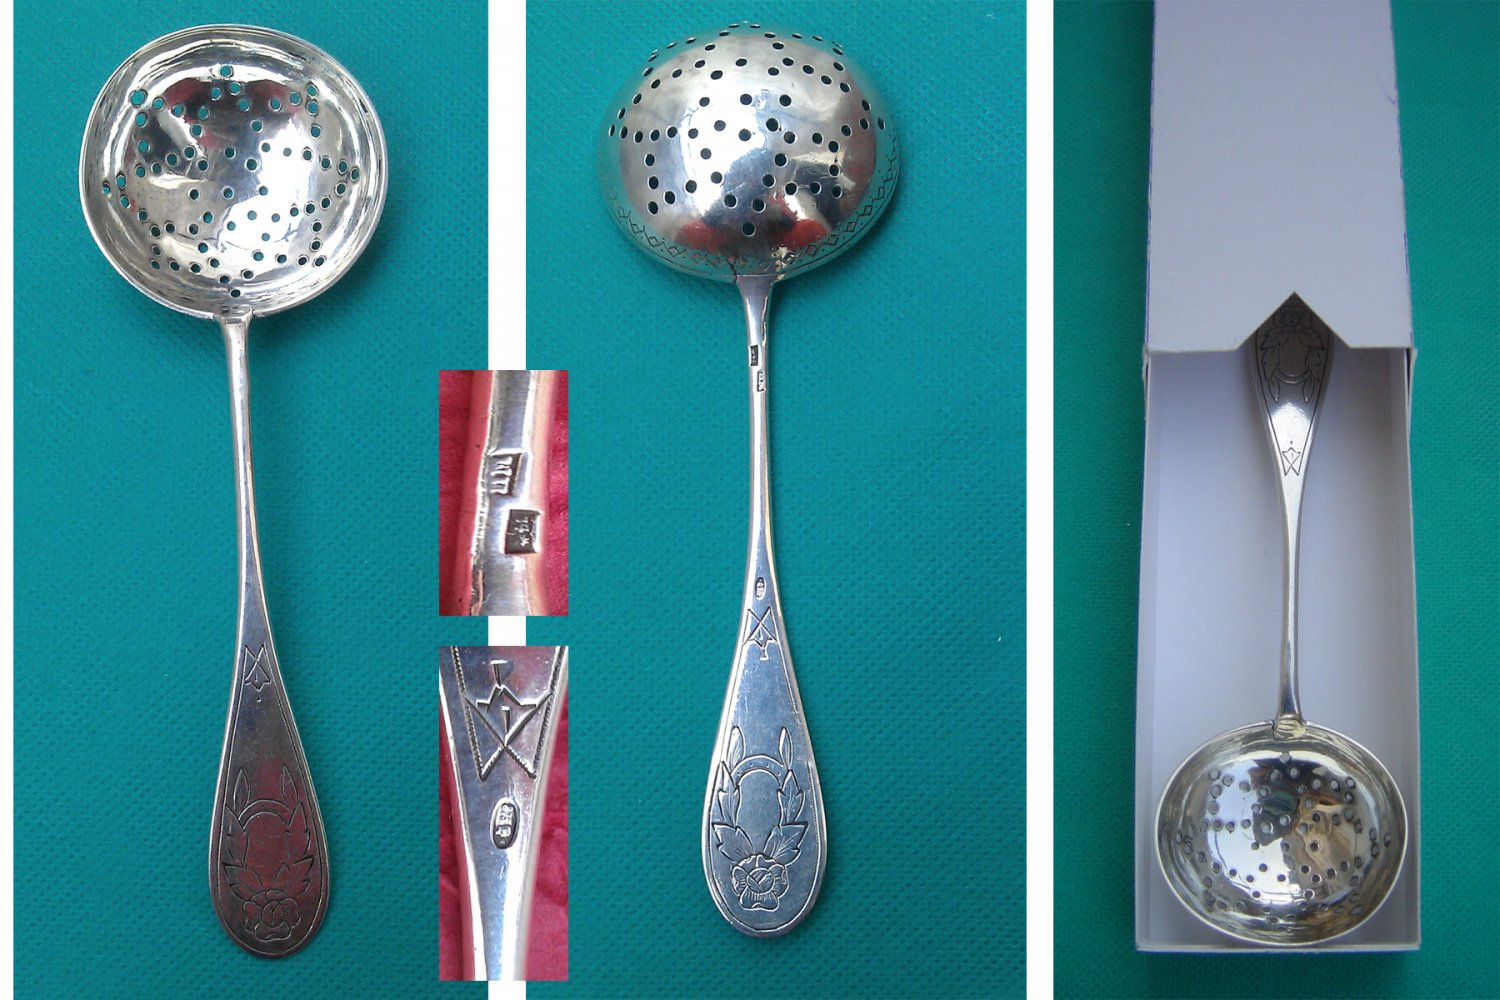 Tea Strainer Spoon in Solid Silver from Riga, Latvia